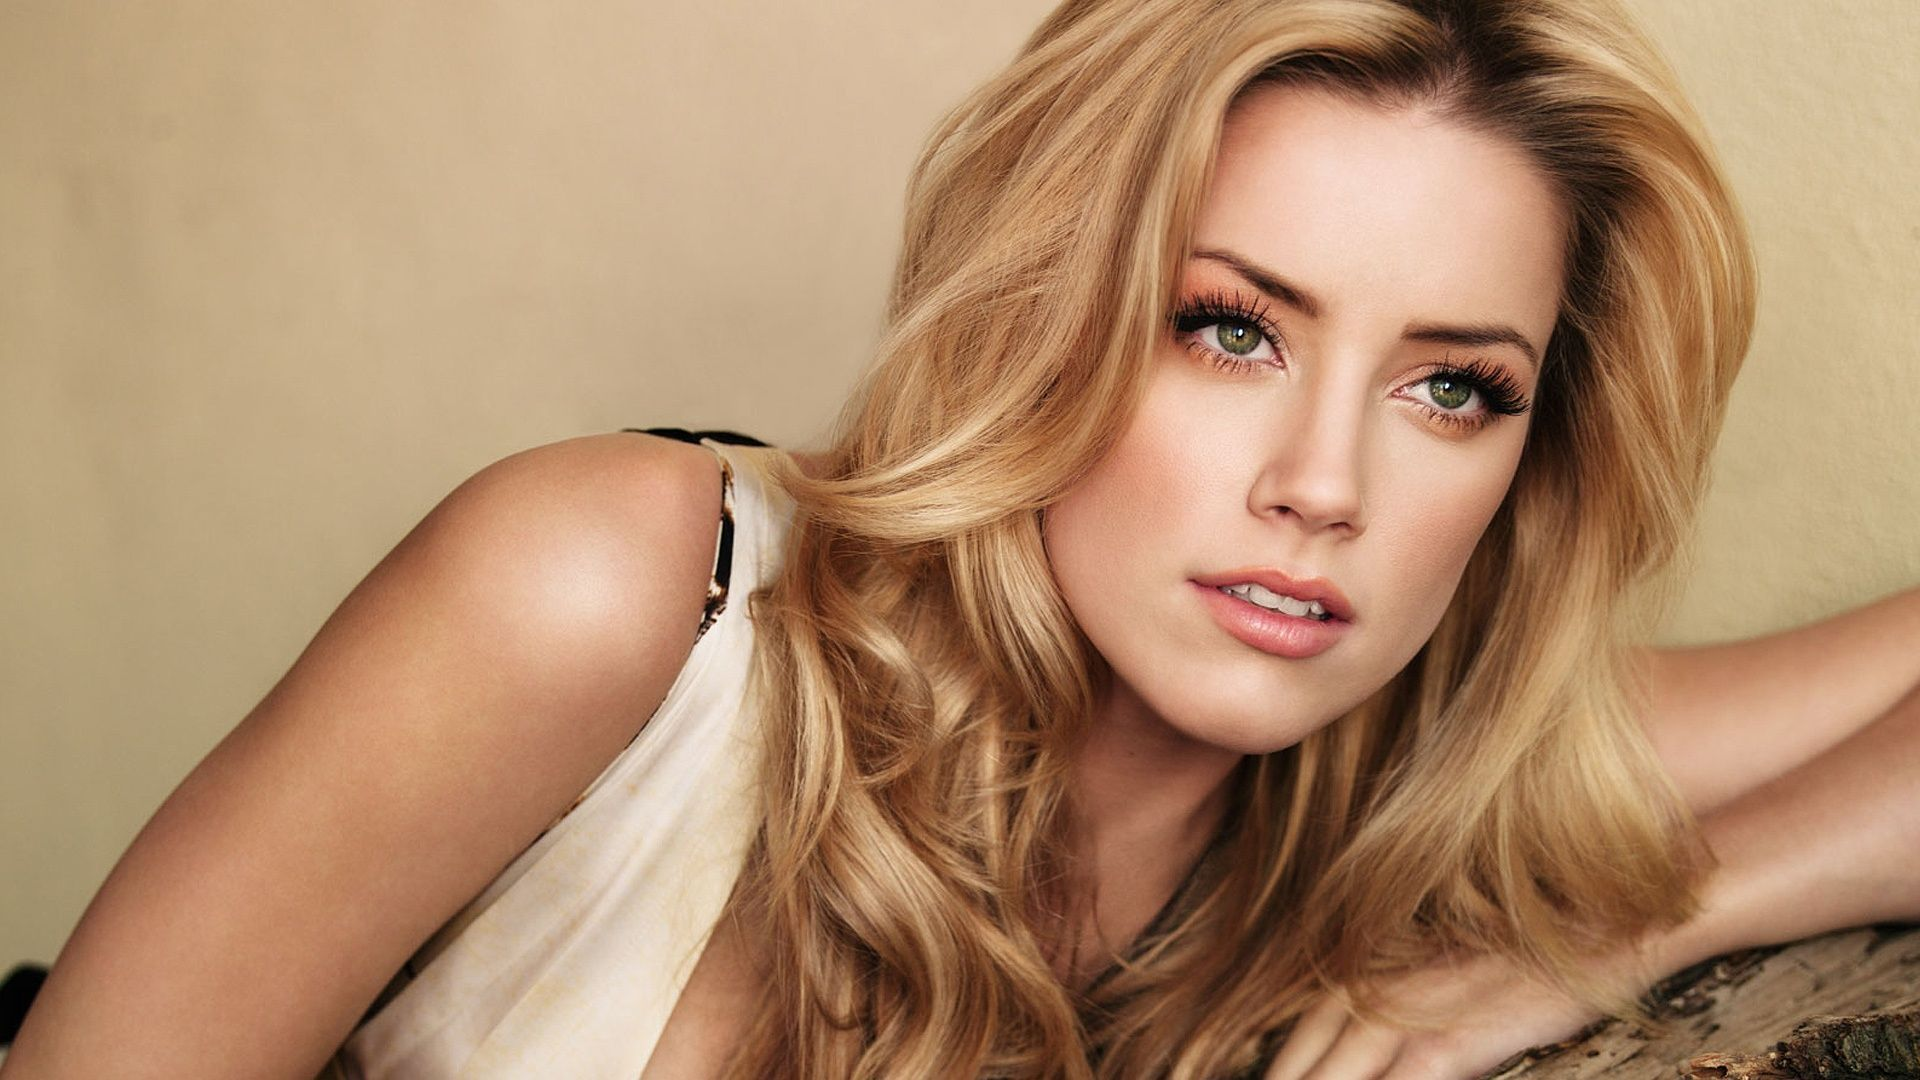 Amber Heard Pictures & Hd Wallpaper